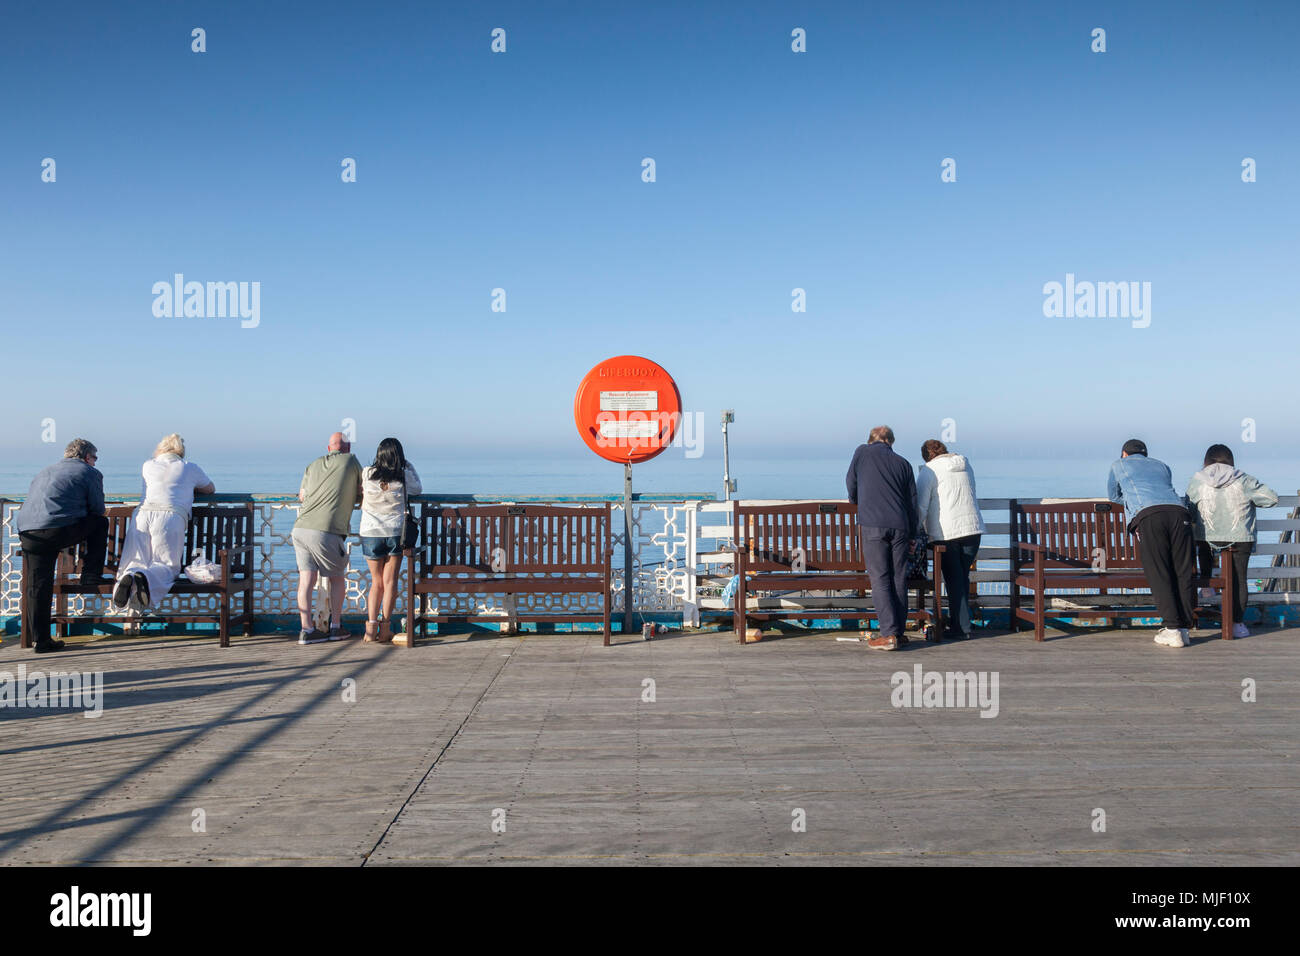 Llandudno, North Wales, UK, 5 May 2018.  Couples looking out to sea from the end of the pier on May Day weekend in glorious sunshine. - Stock Image